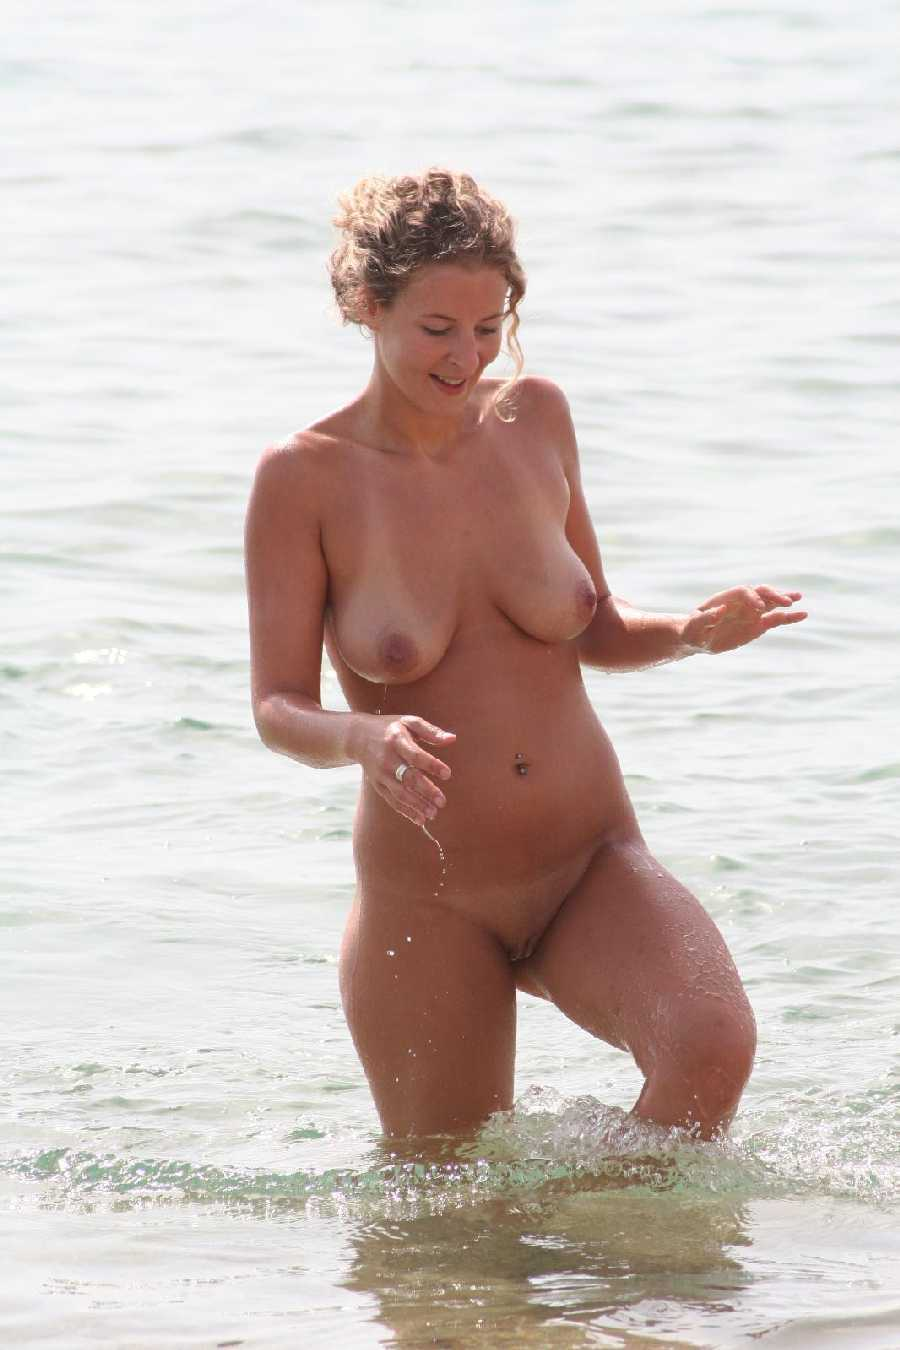 www-mature-jamican-nude-beaches-tubes-com